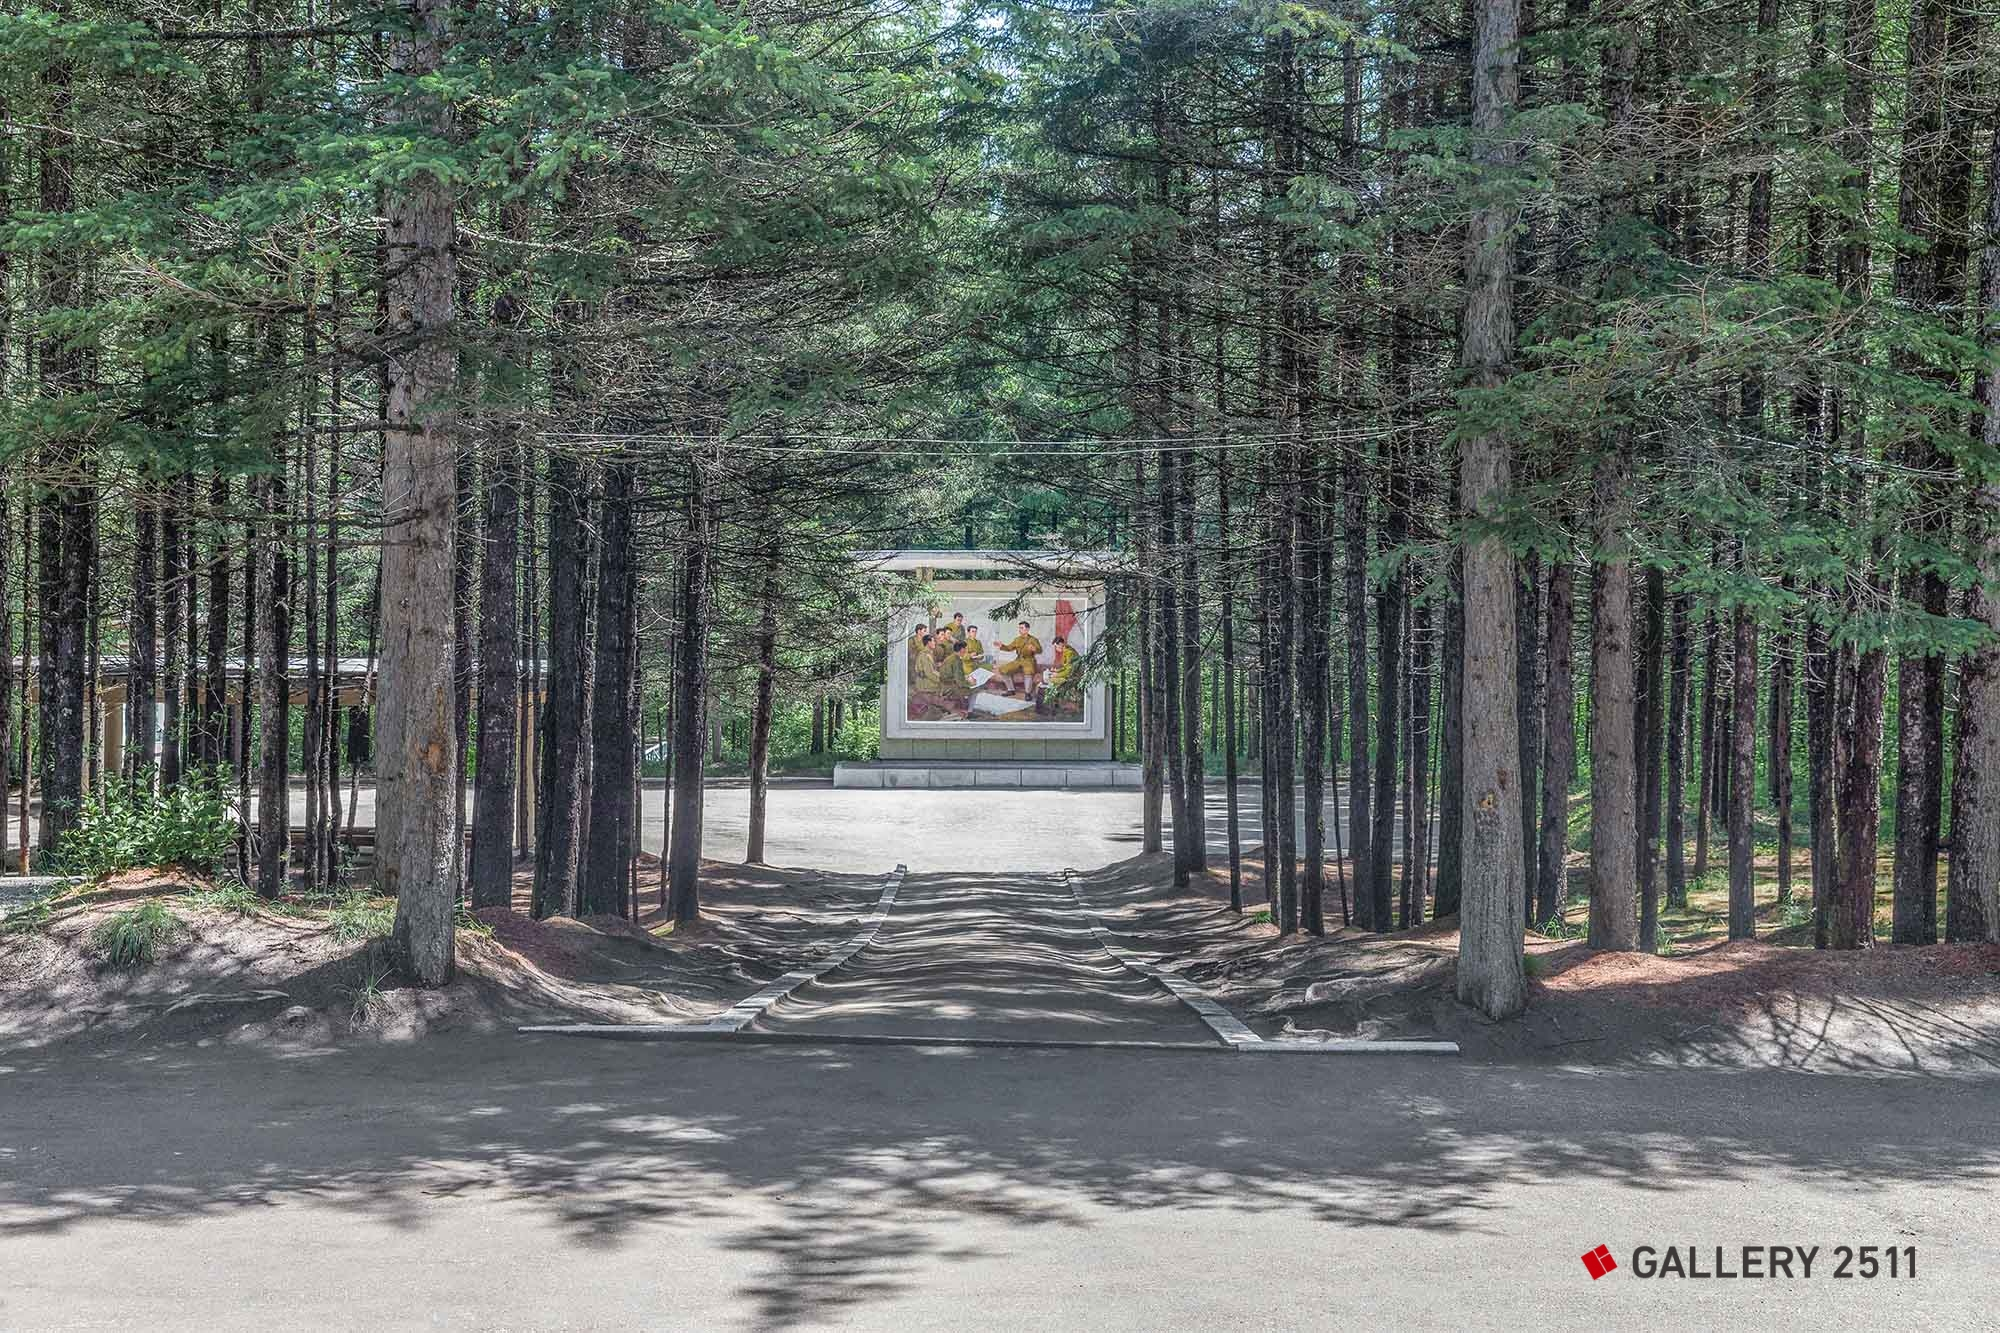 24.Propaganda poster in the forest  2014/06